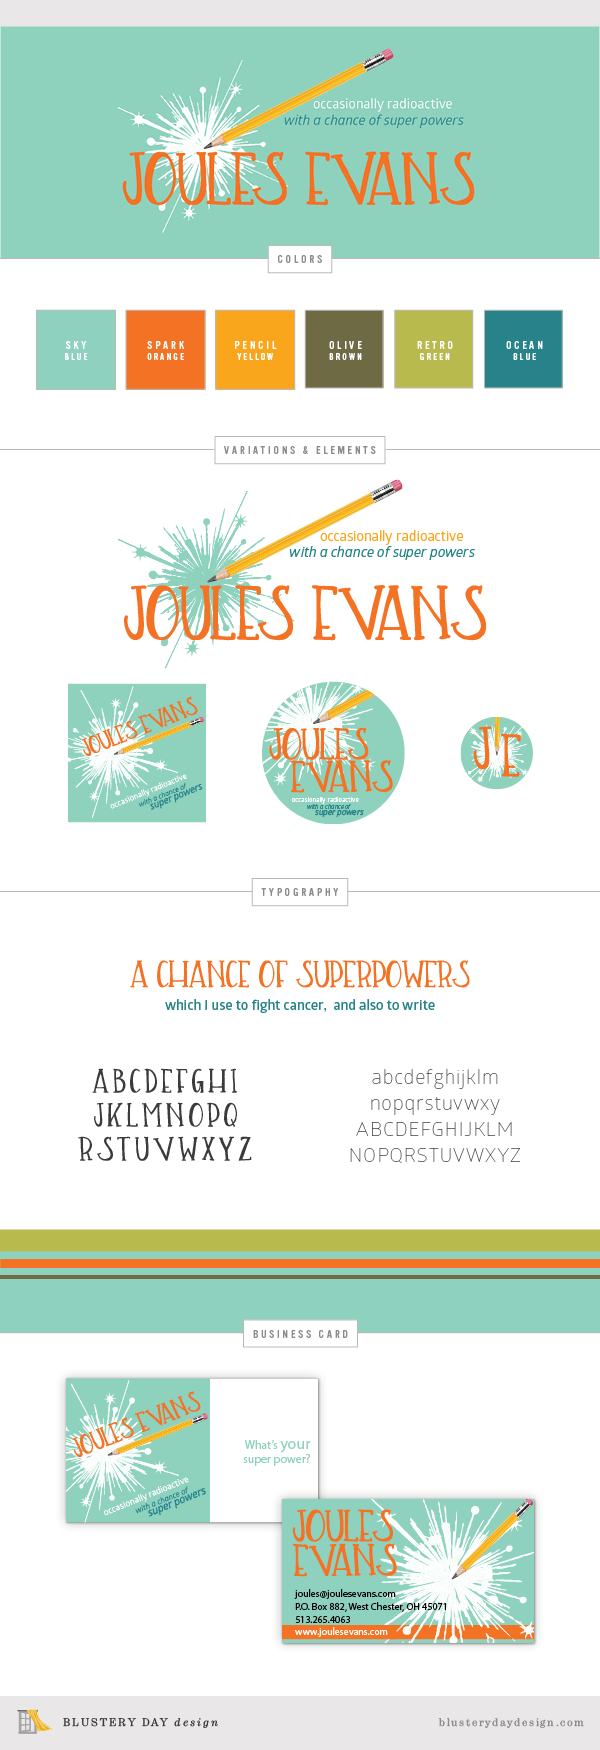 Joules Evans Brand Board